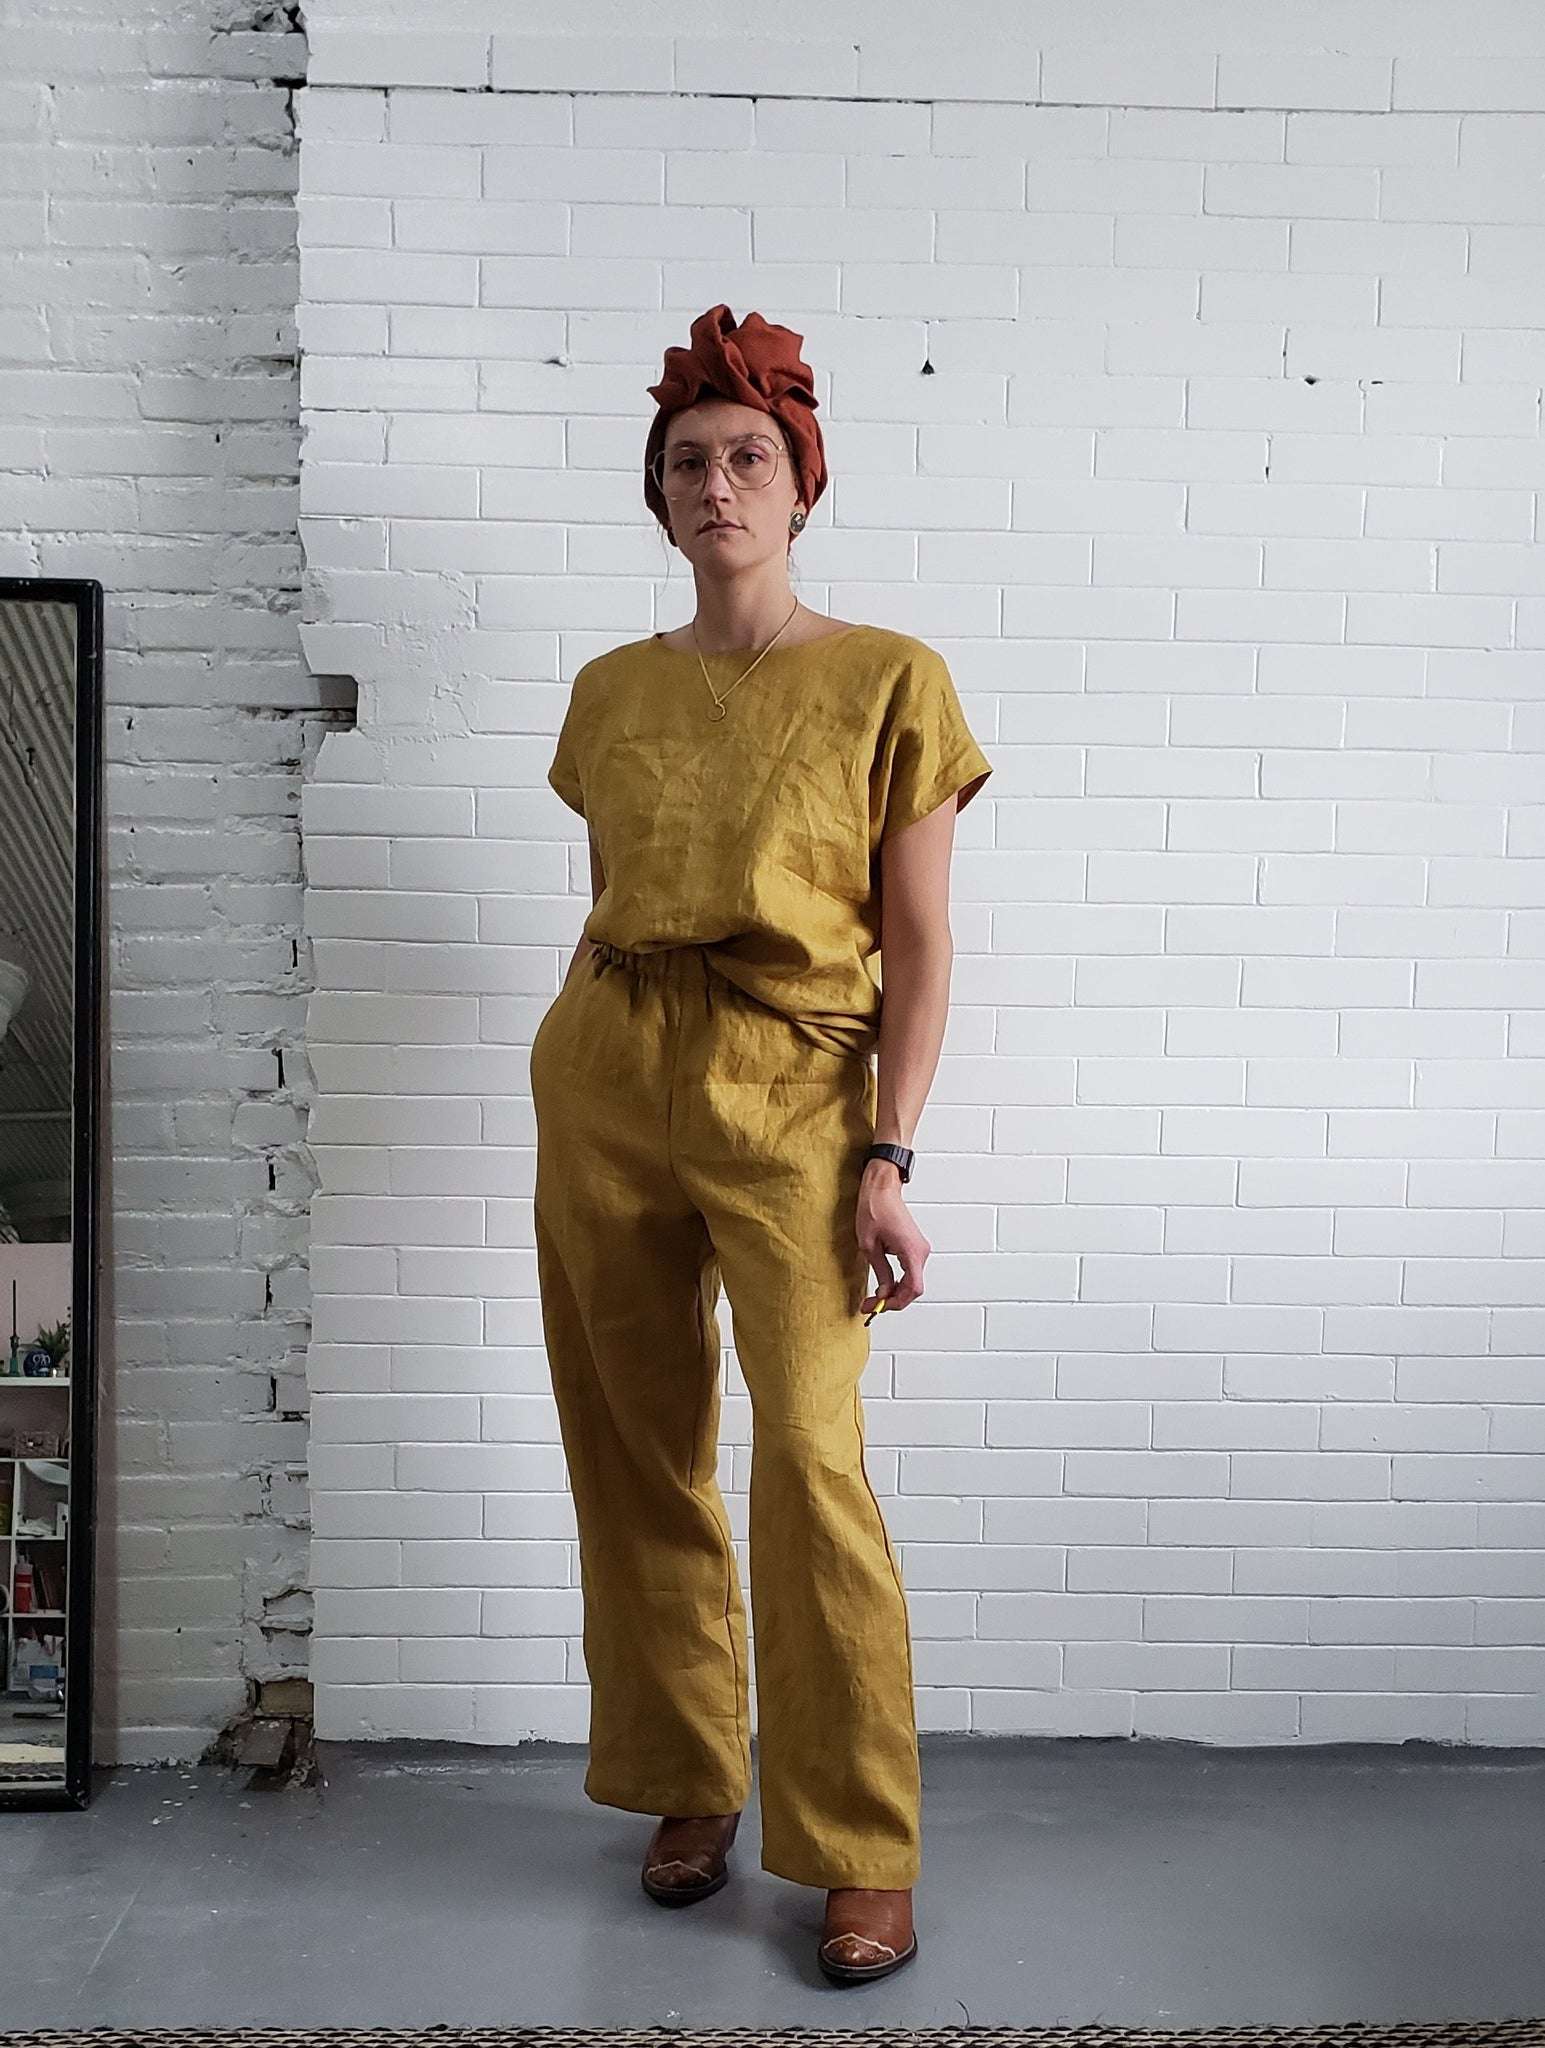 woman wearing golden yellow linen outfit